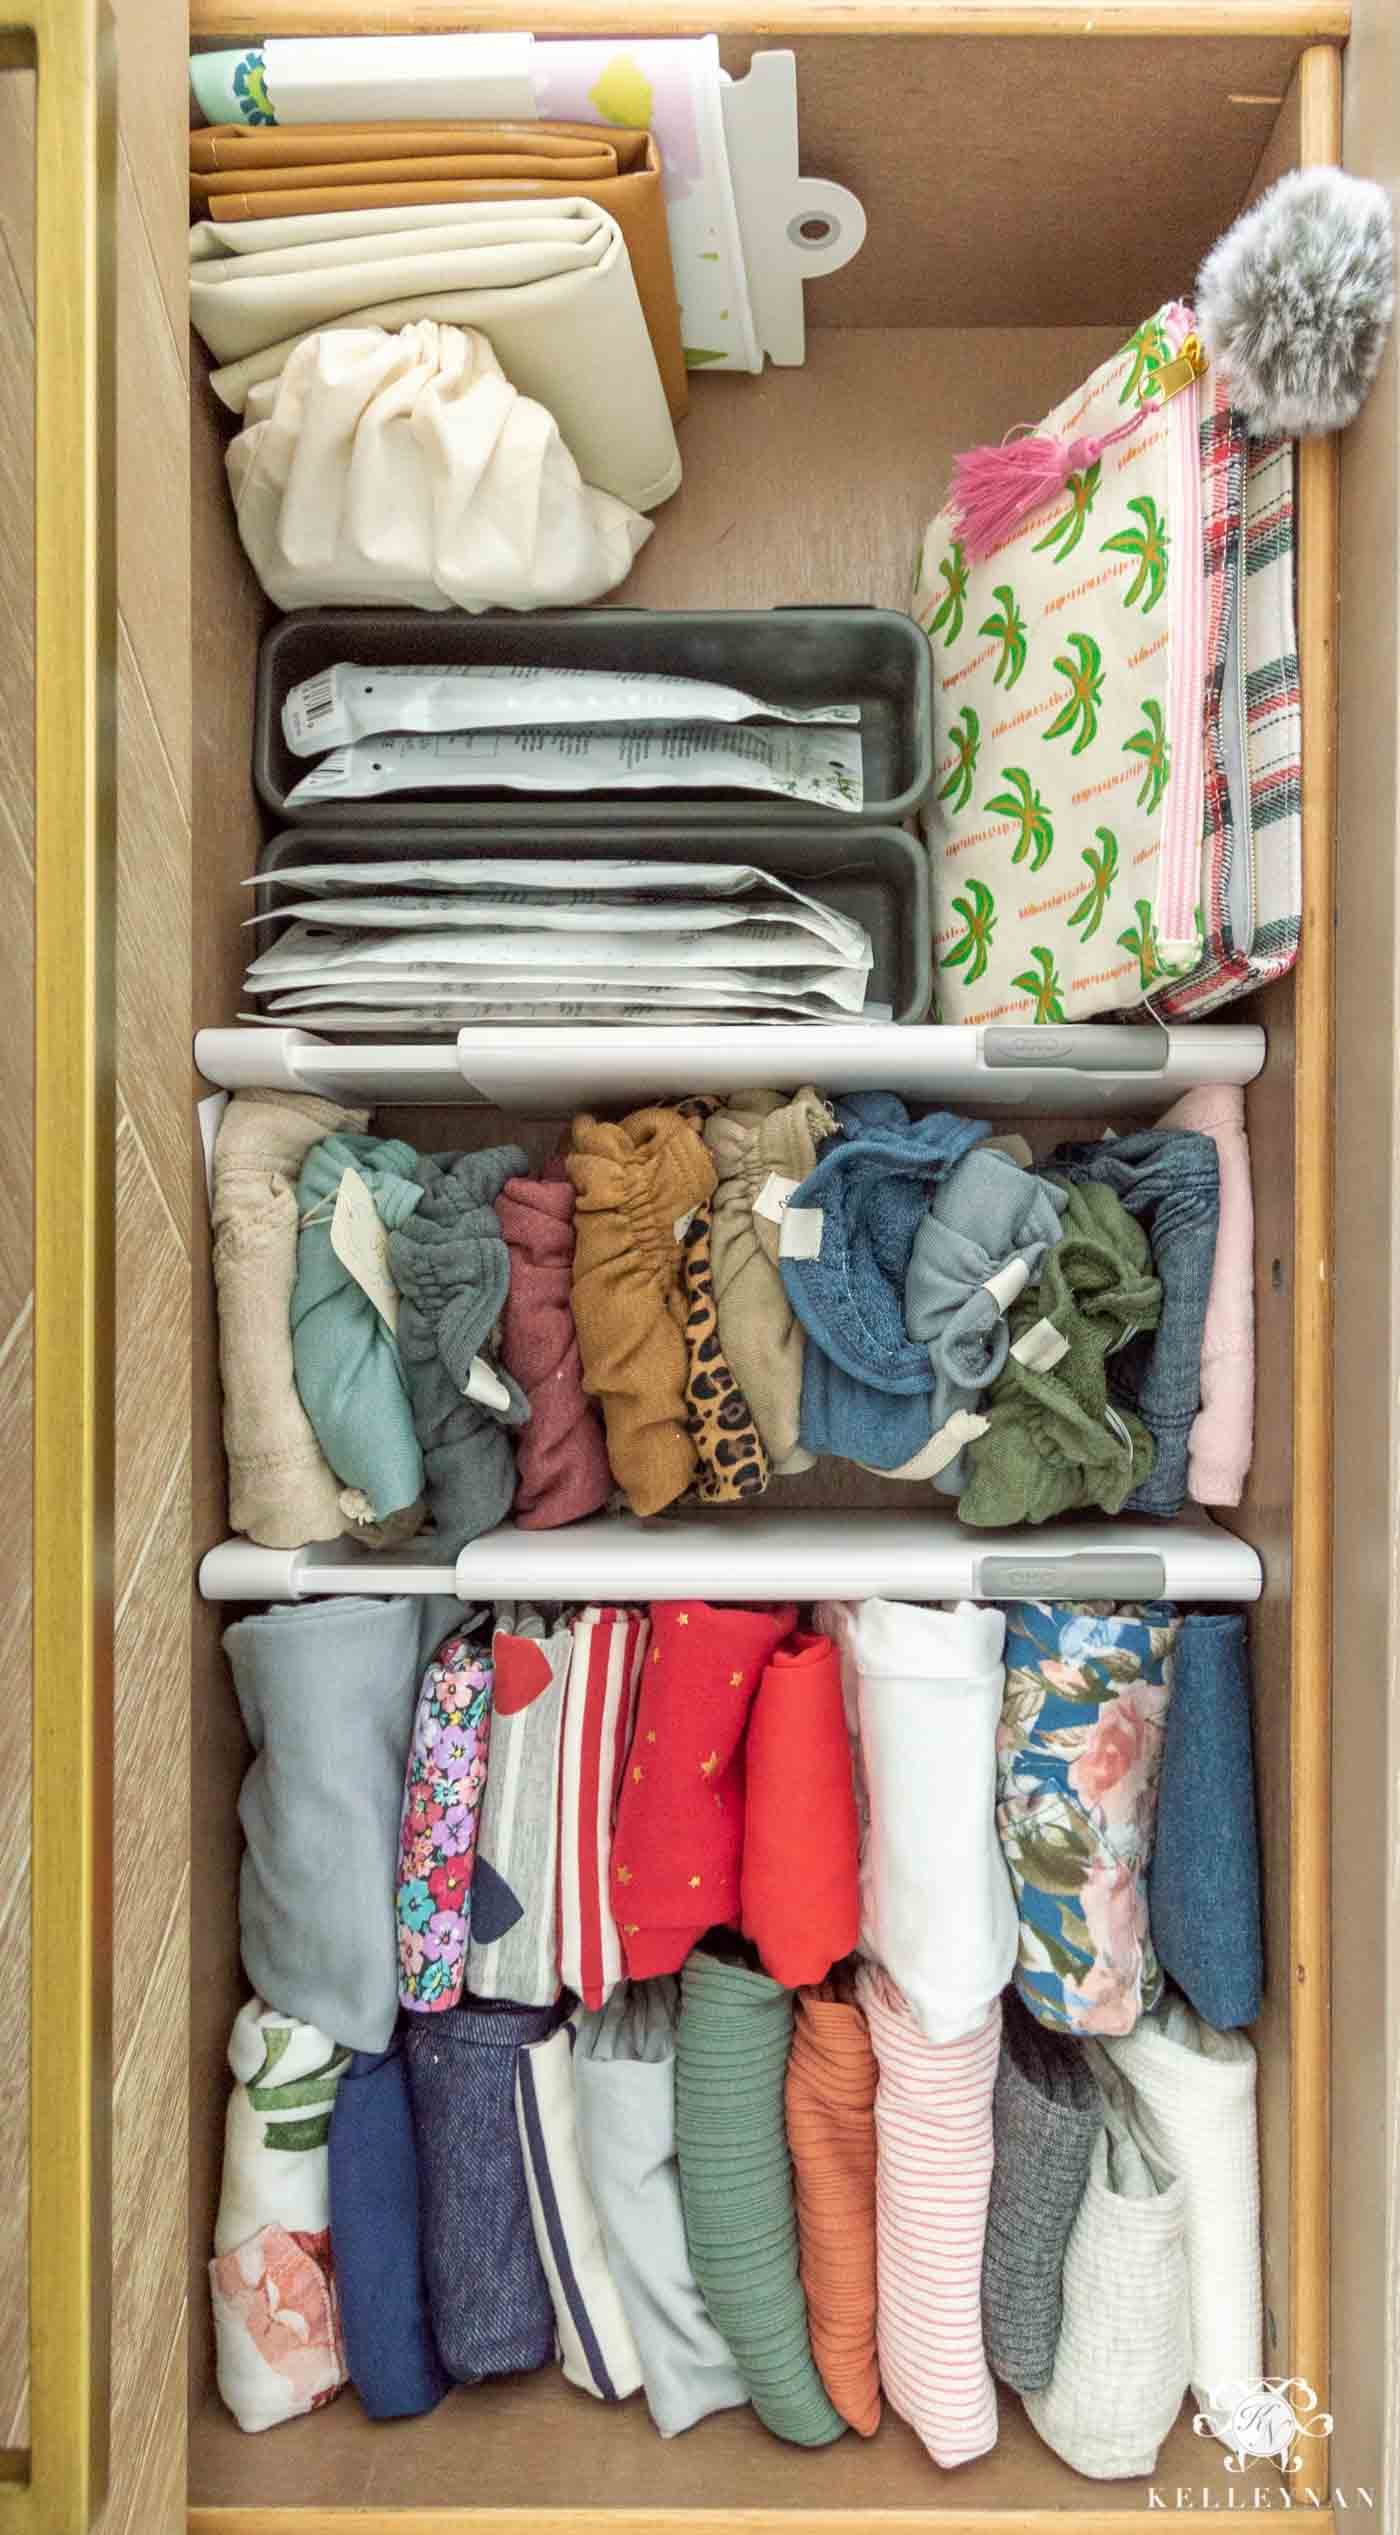 How to Organize the Contents of Your Baby's Dresser